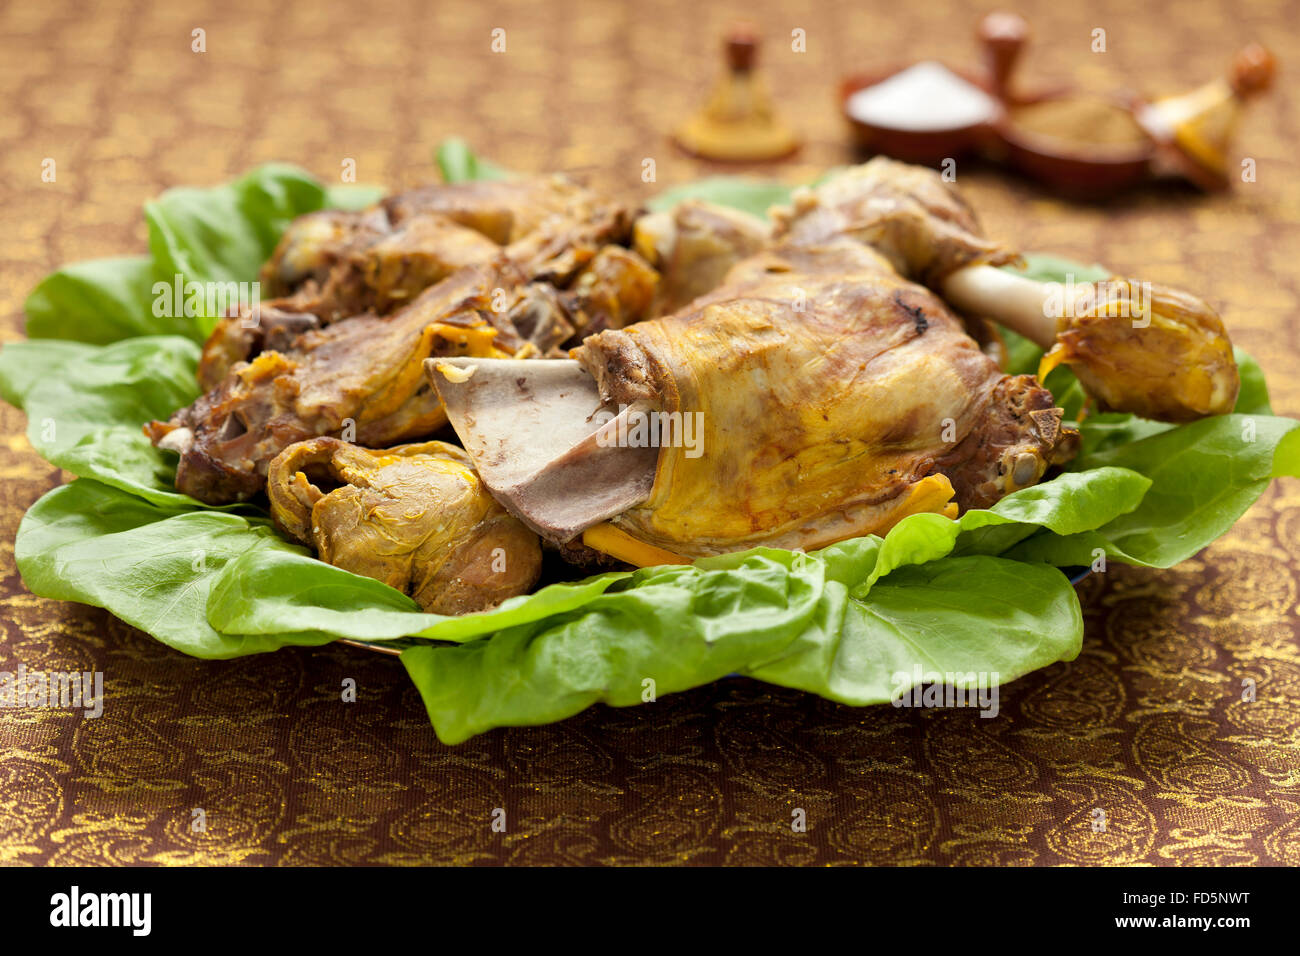 Traditional islam dish for Eid al-Adha on the table - Stock Image